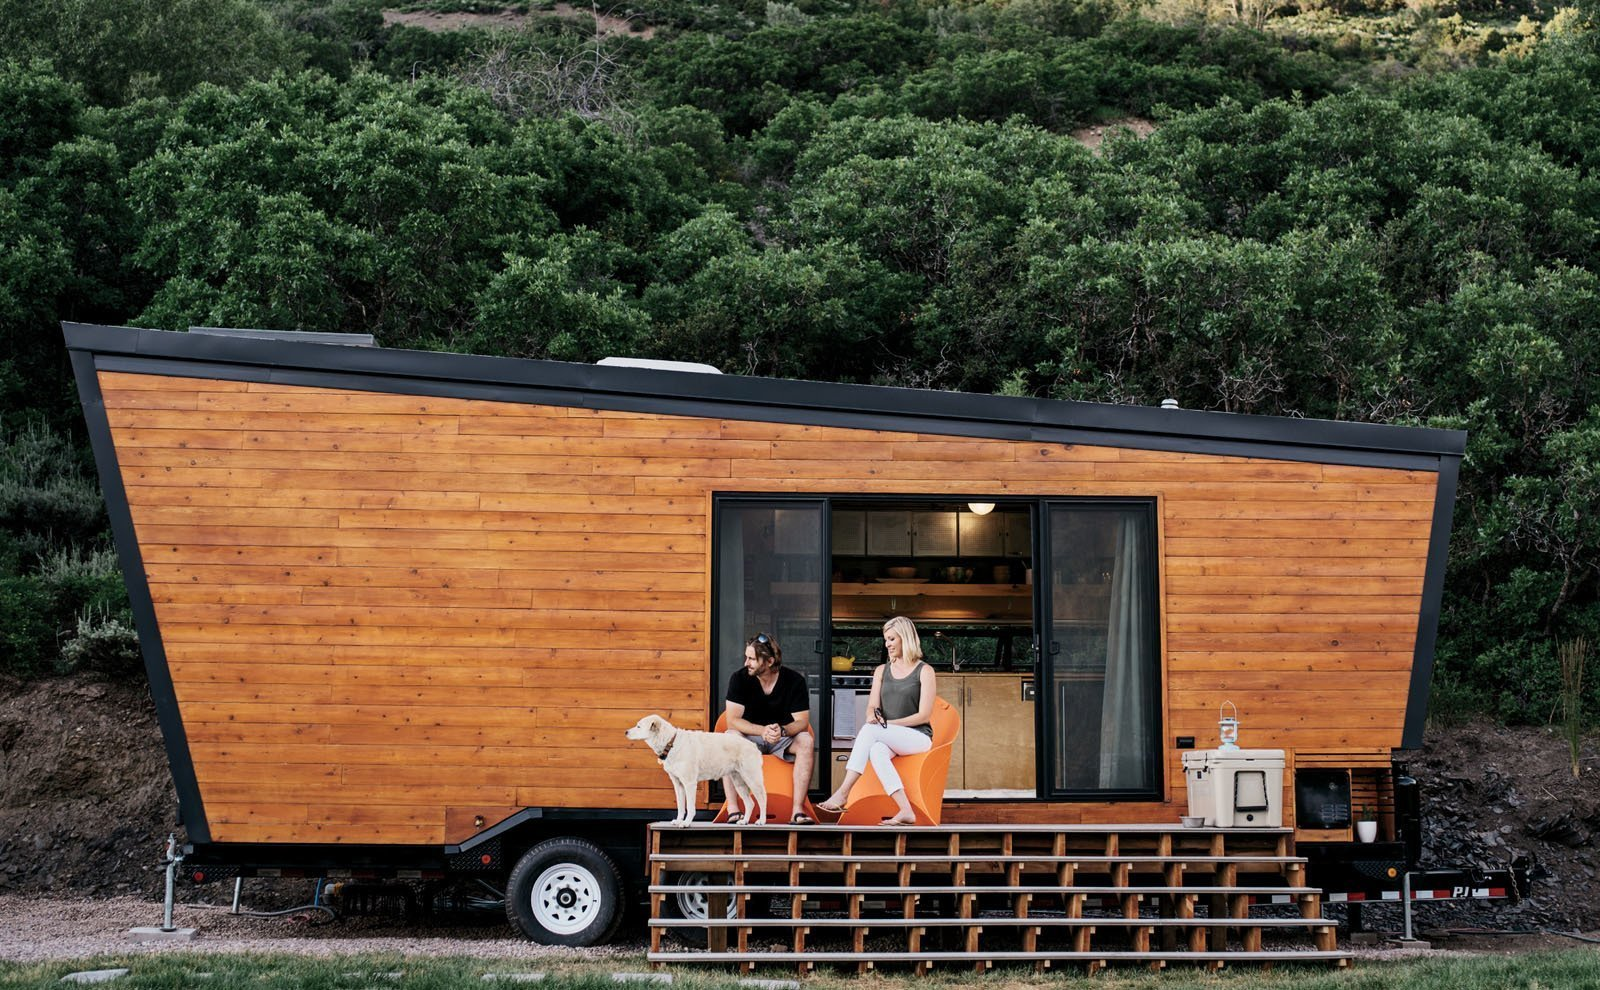 """Exterior, Wood, Tiny Home, and Camper Nicknamed """"Woody"""", this 236-square-foot trailer which has taken a young, upwardly-mobile couple from Austin, Texas, to the Rocky Mountains hamlet of Marble, Colorado. The trailer, which cost just around $50,000 to build has modern birch-veneer plywood fit outs and skylights, and accommodates a half-size refrigerator, eight-inch-deep storage compartments built into the floor, a loft bed and even a galvanized-steel cow trough bathtub.  Best Exterior Camper Tiny Home Photos from 6 Modern Homes on Wheels"""